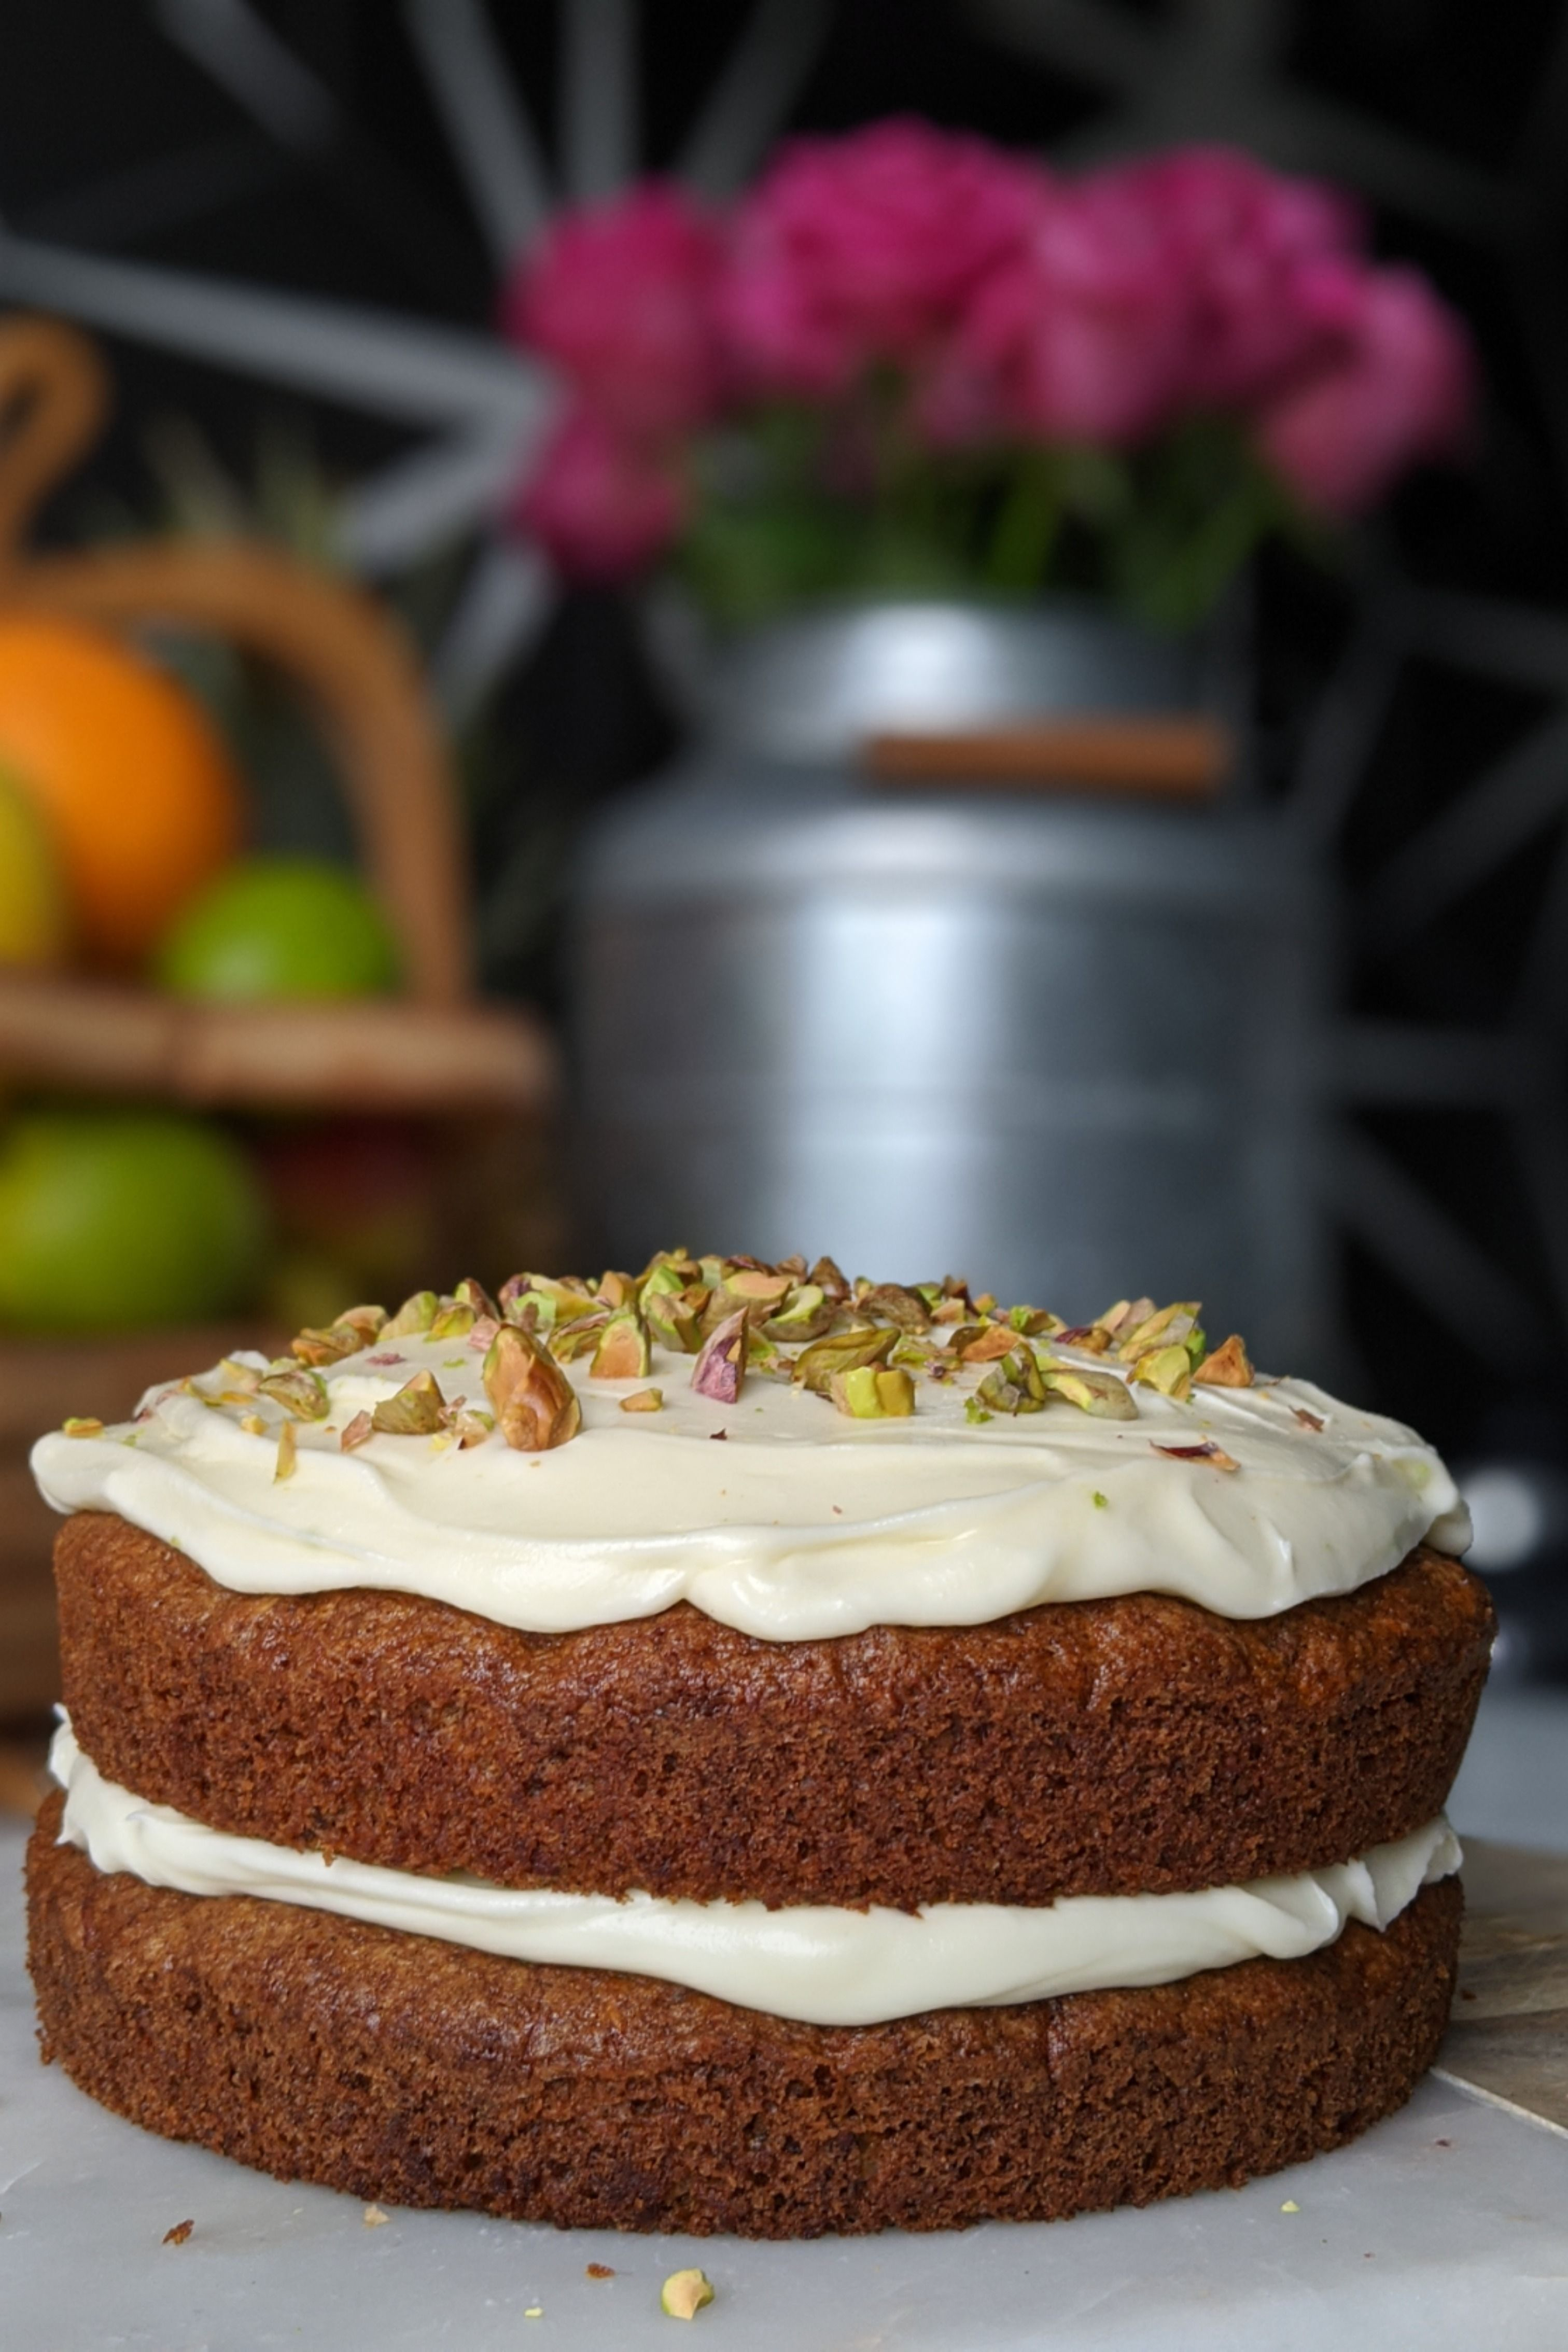 Epic Carrot Cake in 2020 | Easy strawberry desserts, Best ...